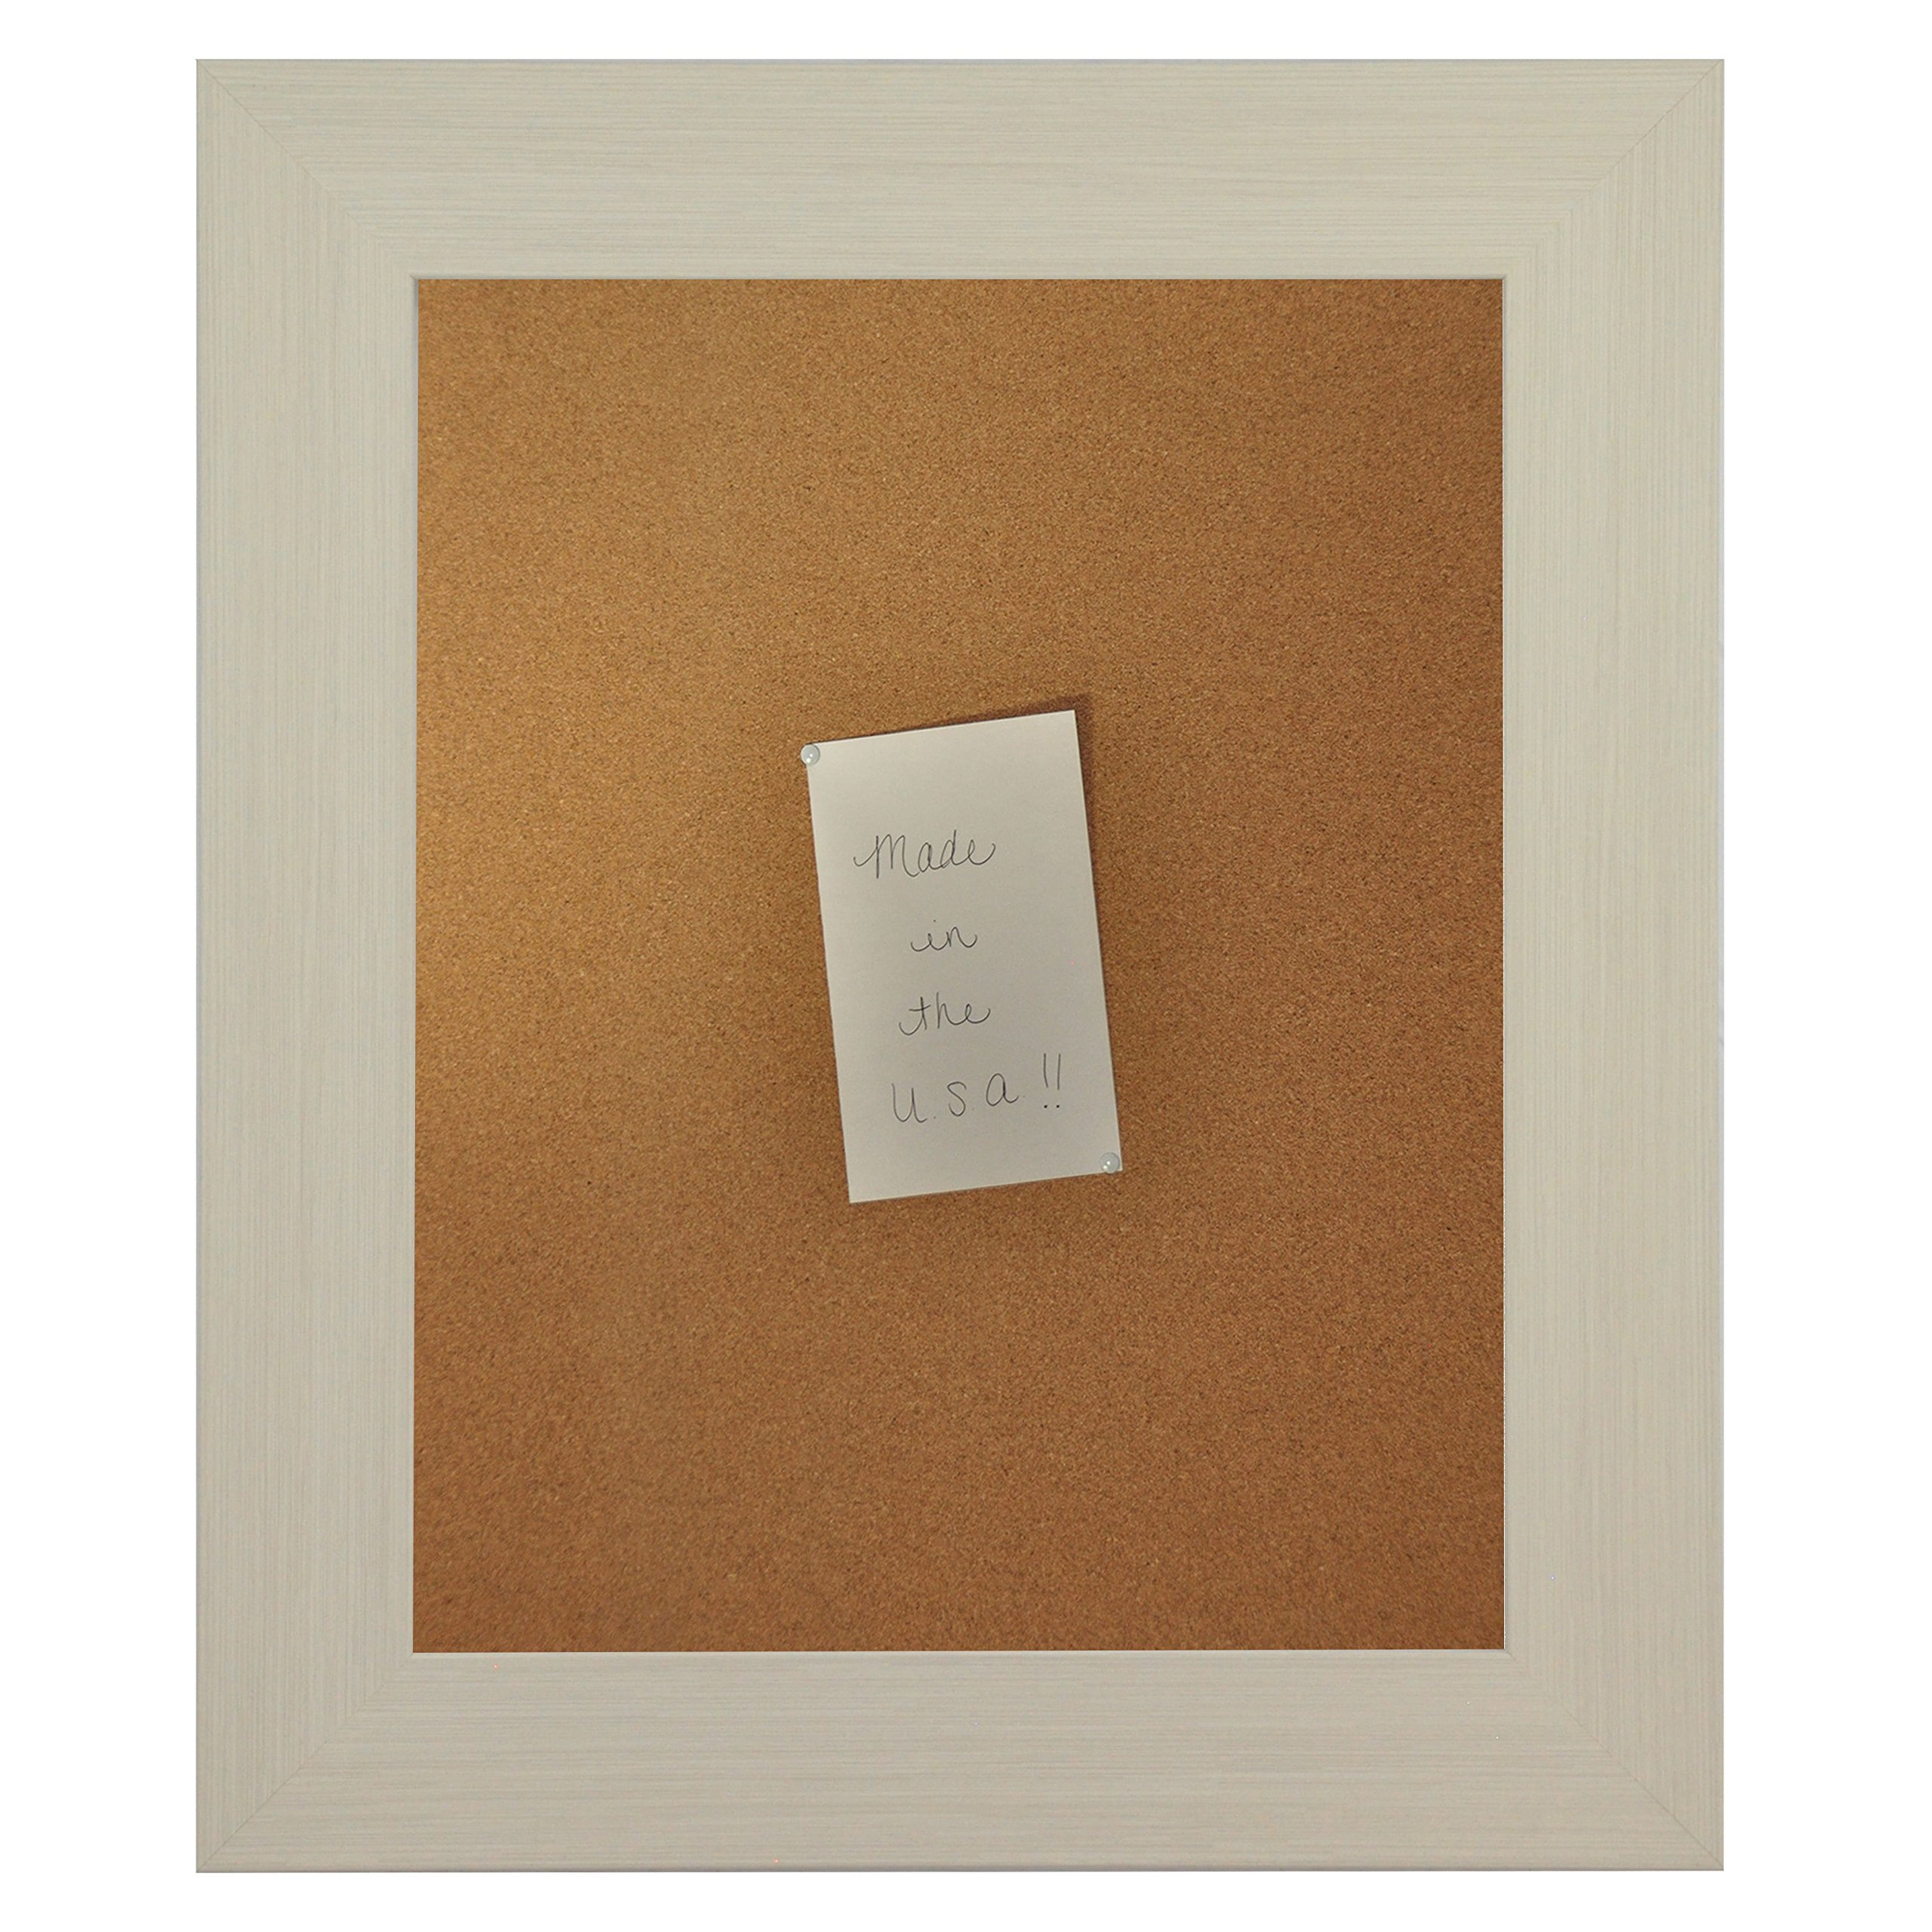 Rayne Mirrors American Made Rayne Arctic Ivory Corkboard Exterior Size: 18 x 24 by Rayne Mirrors